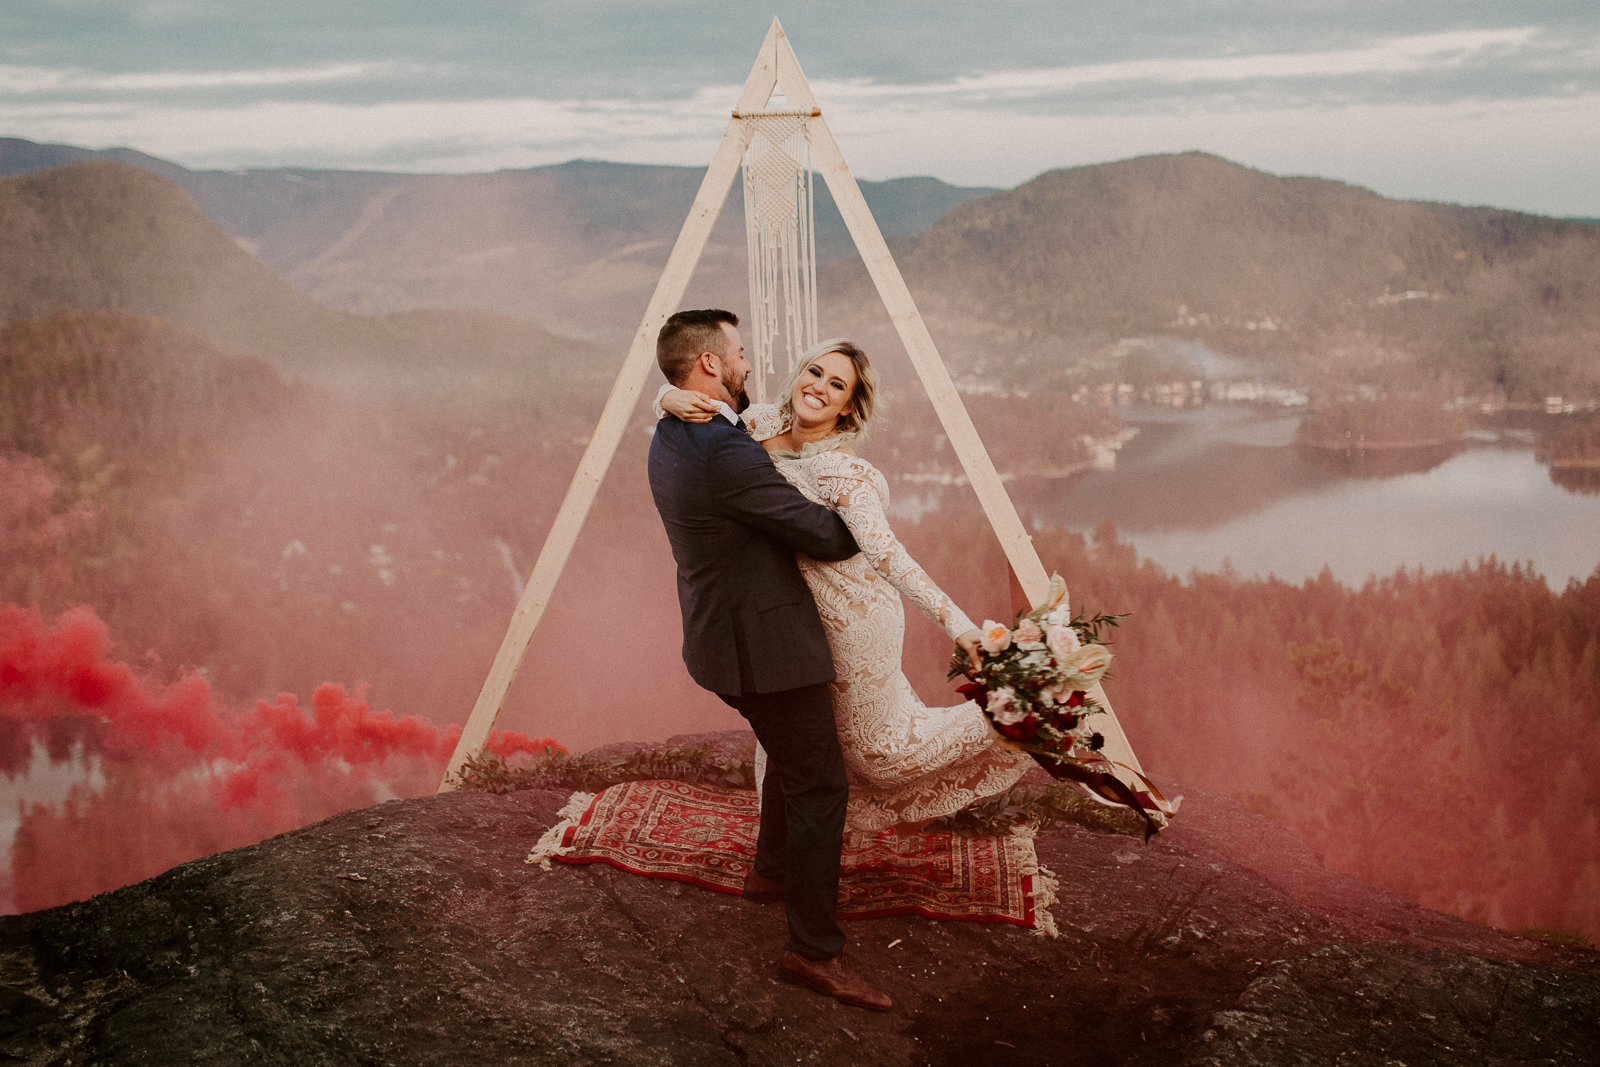 Luke Lambertson Photo_BritishColumbia_Canada_AdventurousCouple_Elopement_IMG-8758.jpg